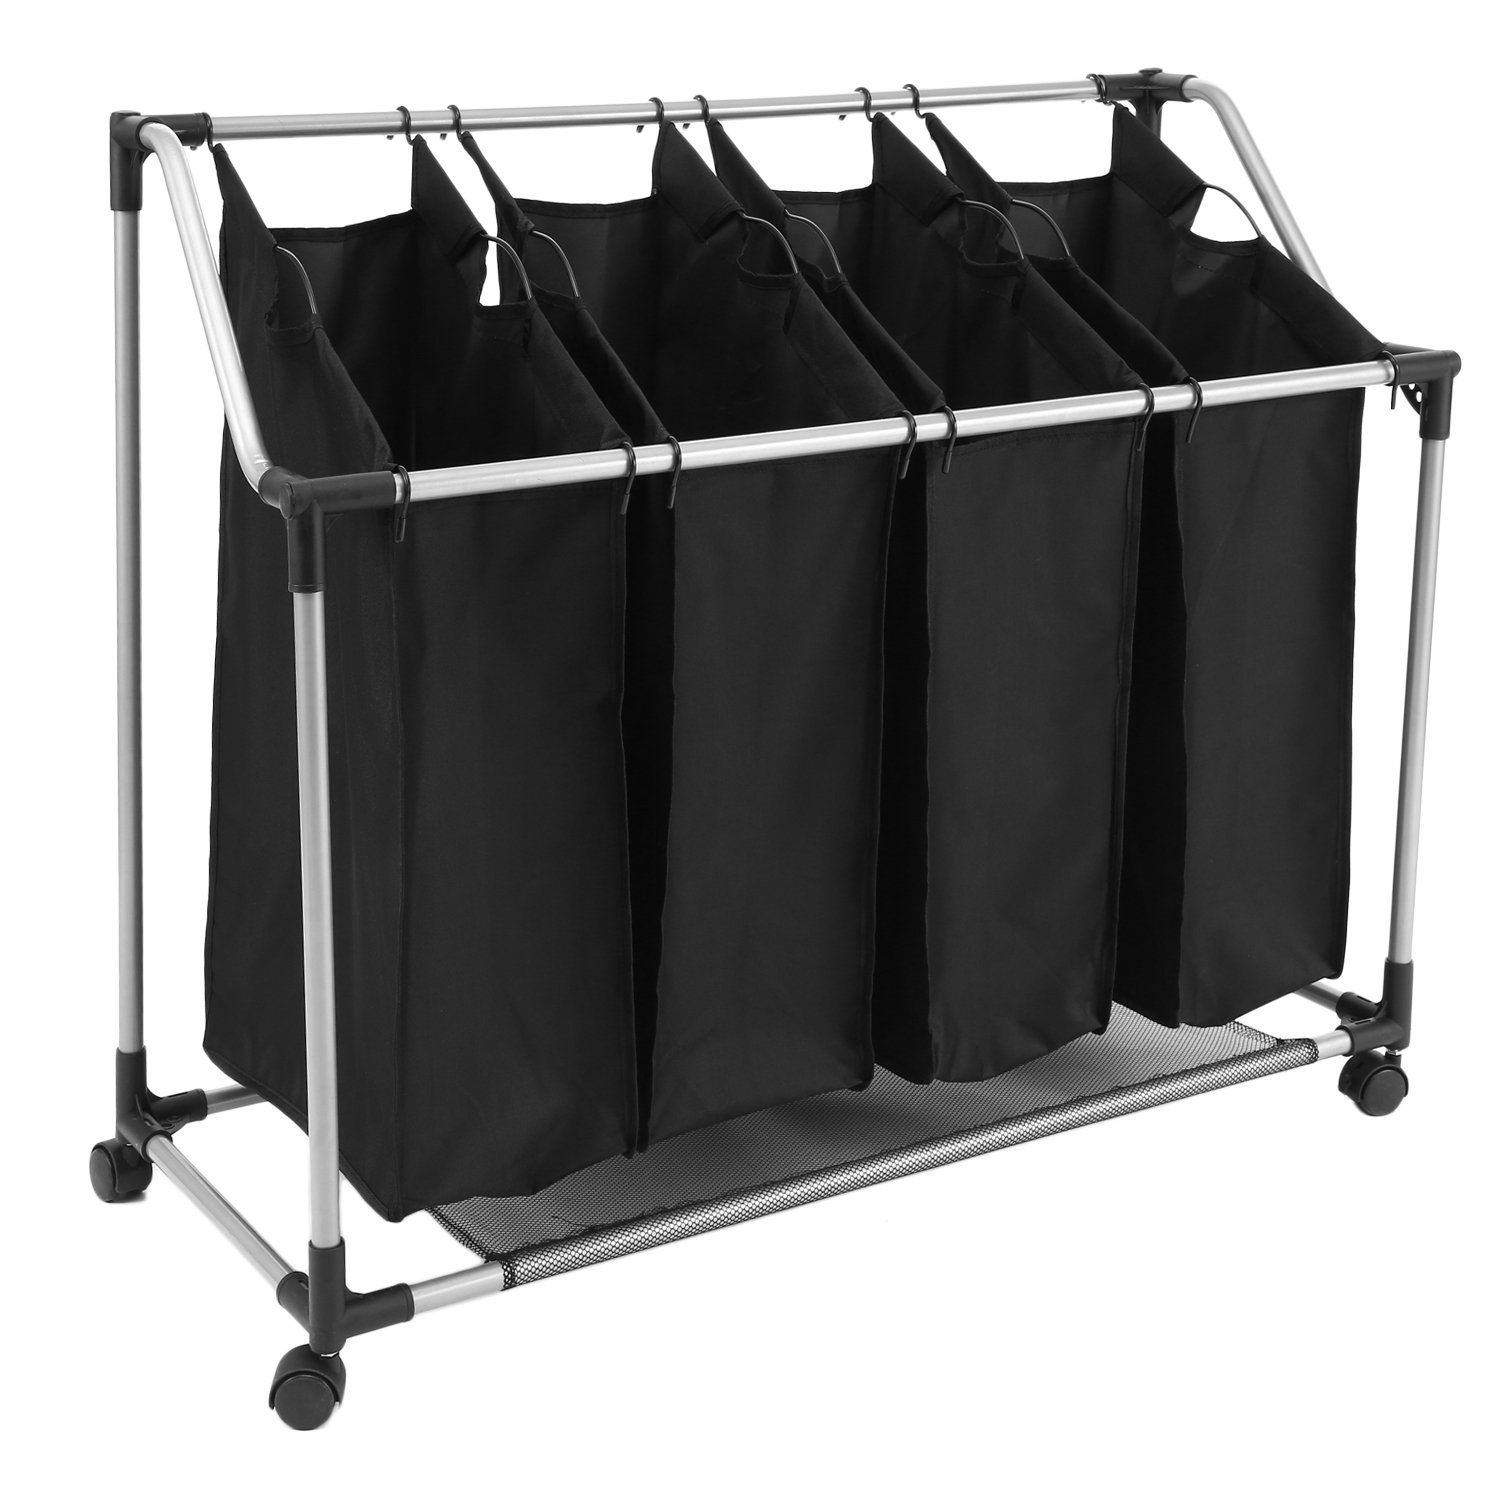 Papafix Laundry Sorter Cart 4 Bag Folding Heavy Duty Rolling Laundry Hamper Organizer With Removable Bags Wheels Black